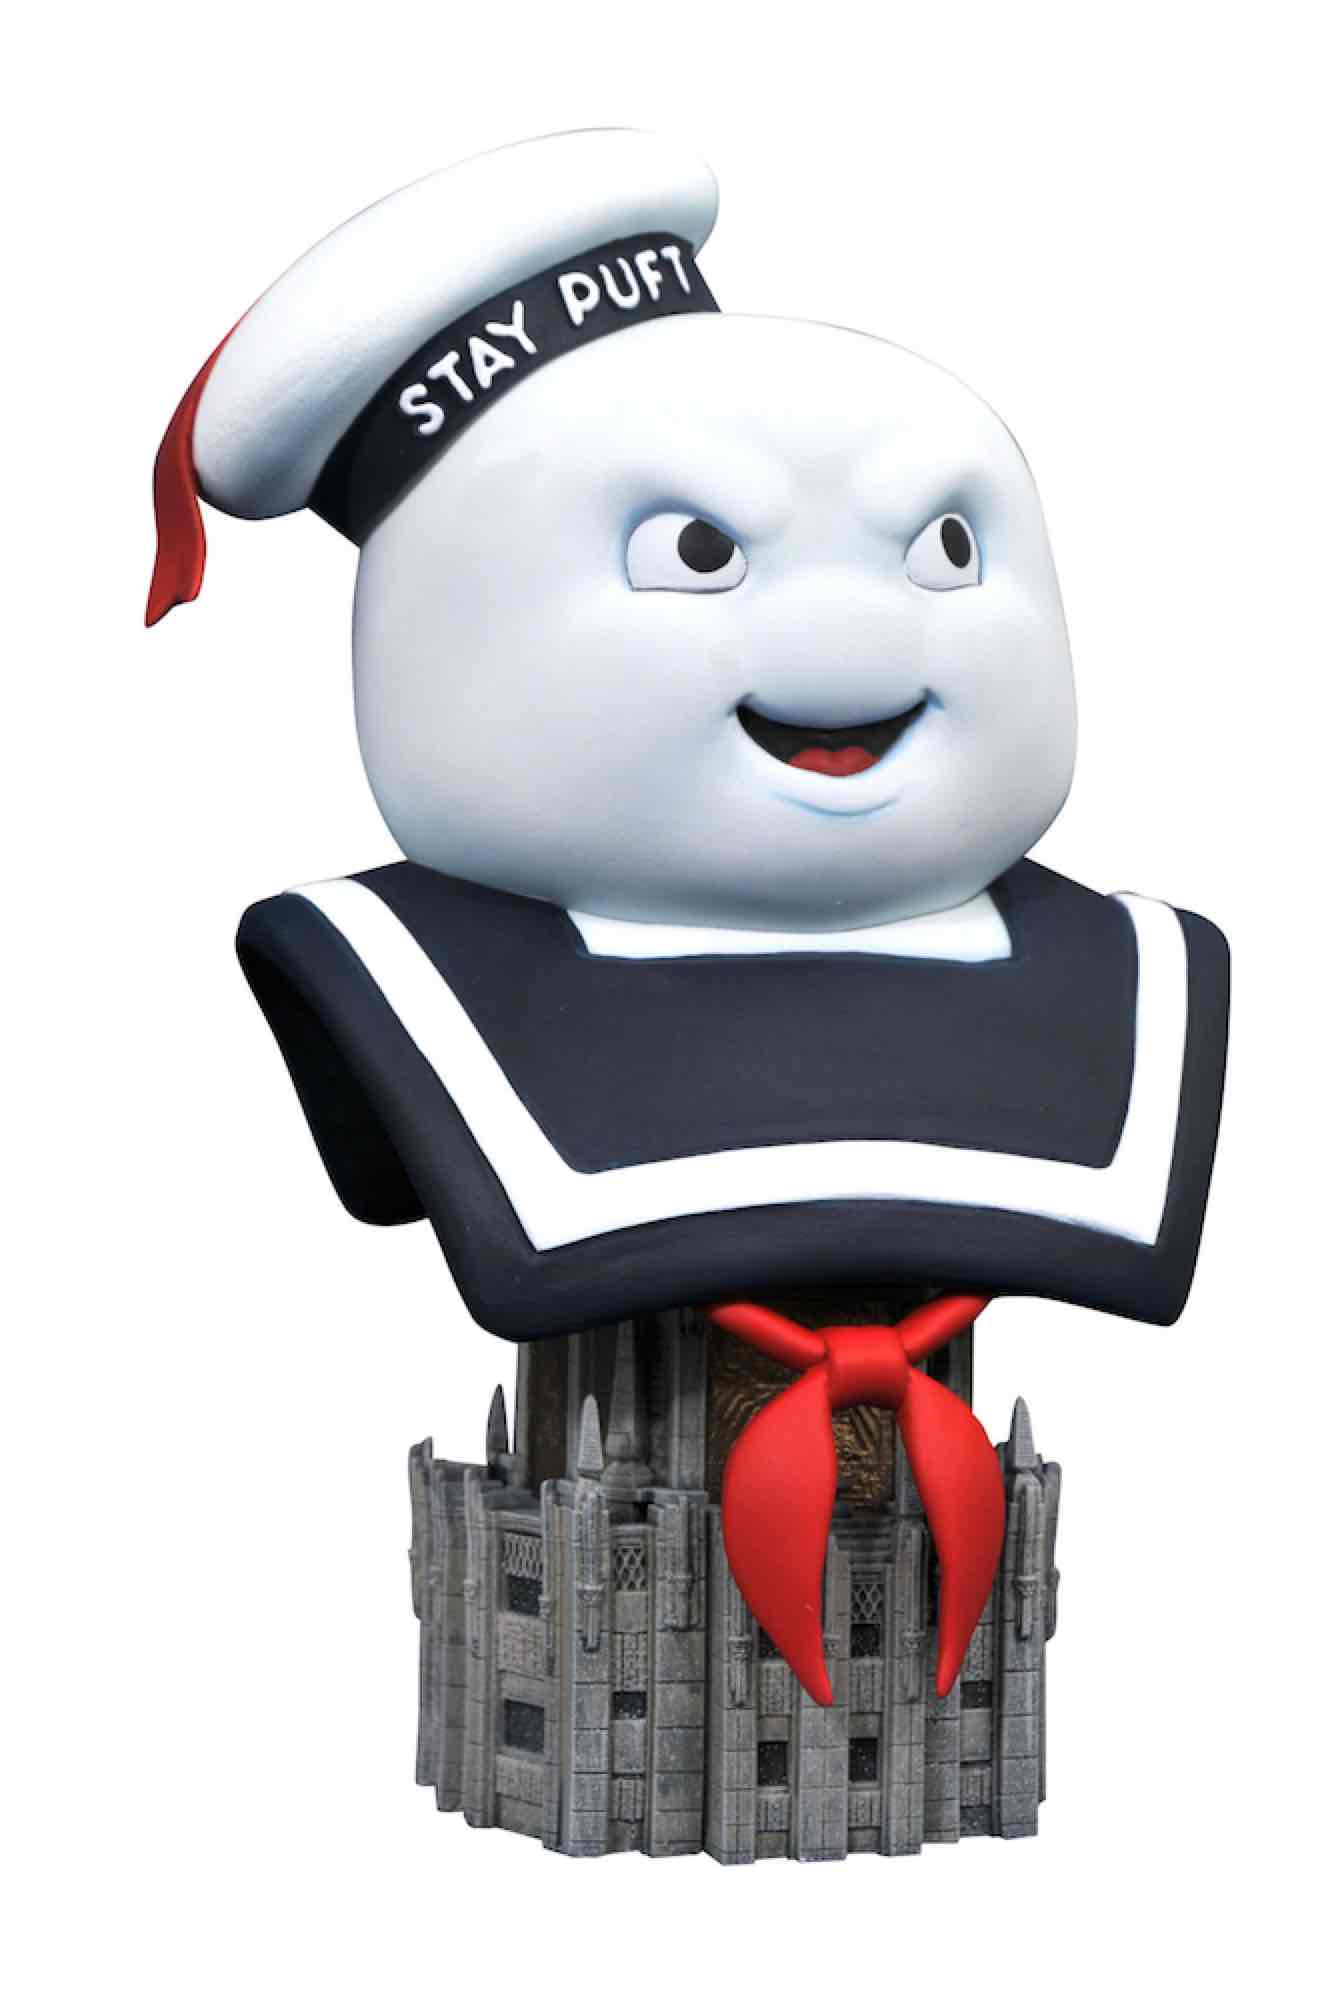 MR. STAY-PUFT BUSTO RESINA 25 CM 1/2 SCALE LEGENDS IN 3D GHOSTBUSTERS